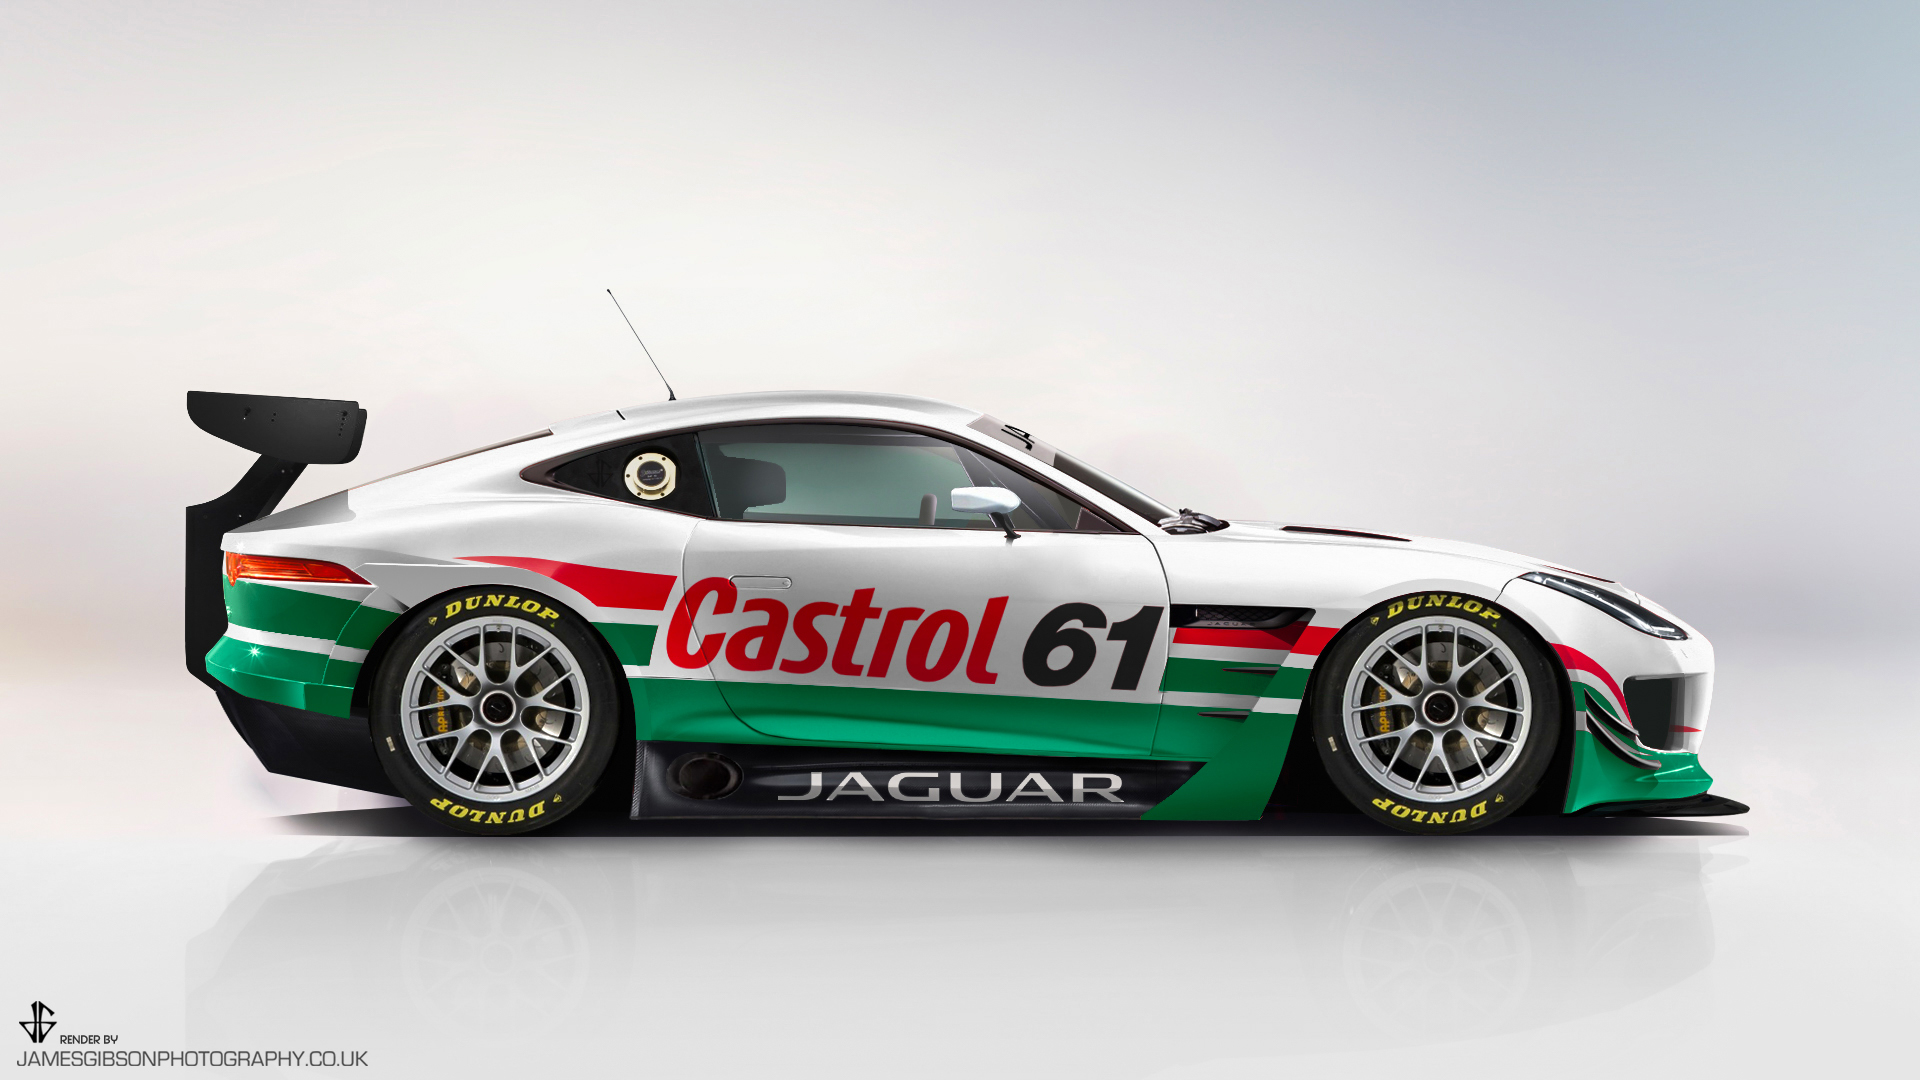 Ftype gt3 side view Castrol - James Gibson Photography